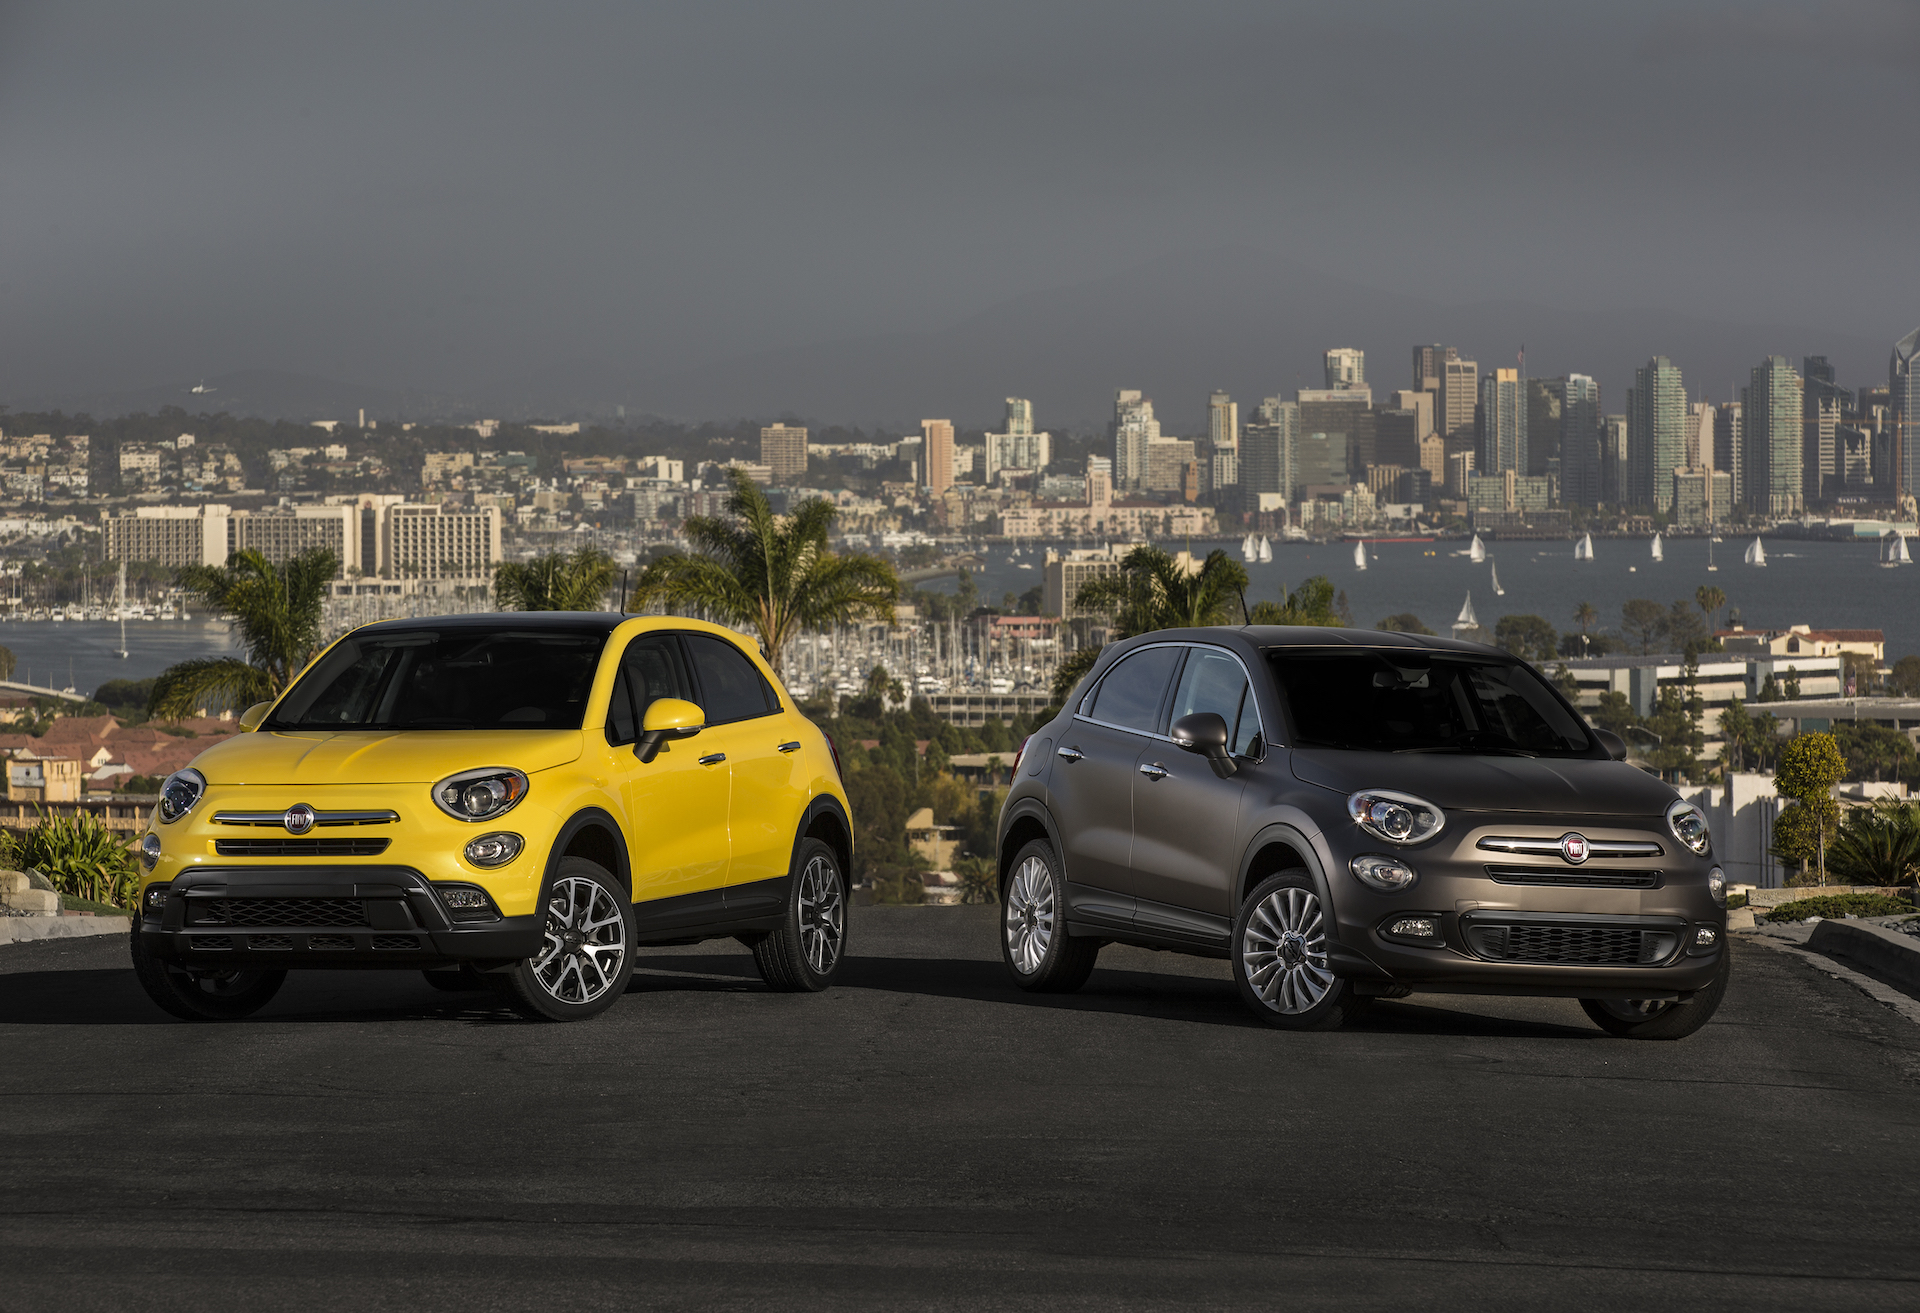 2016 Fiat 500X Small Crossover SUV To Start At $20,900